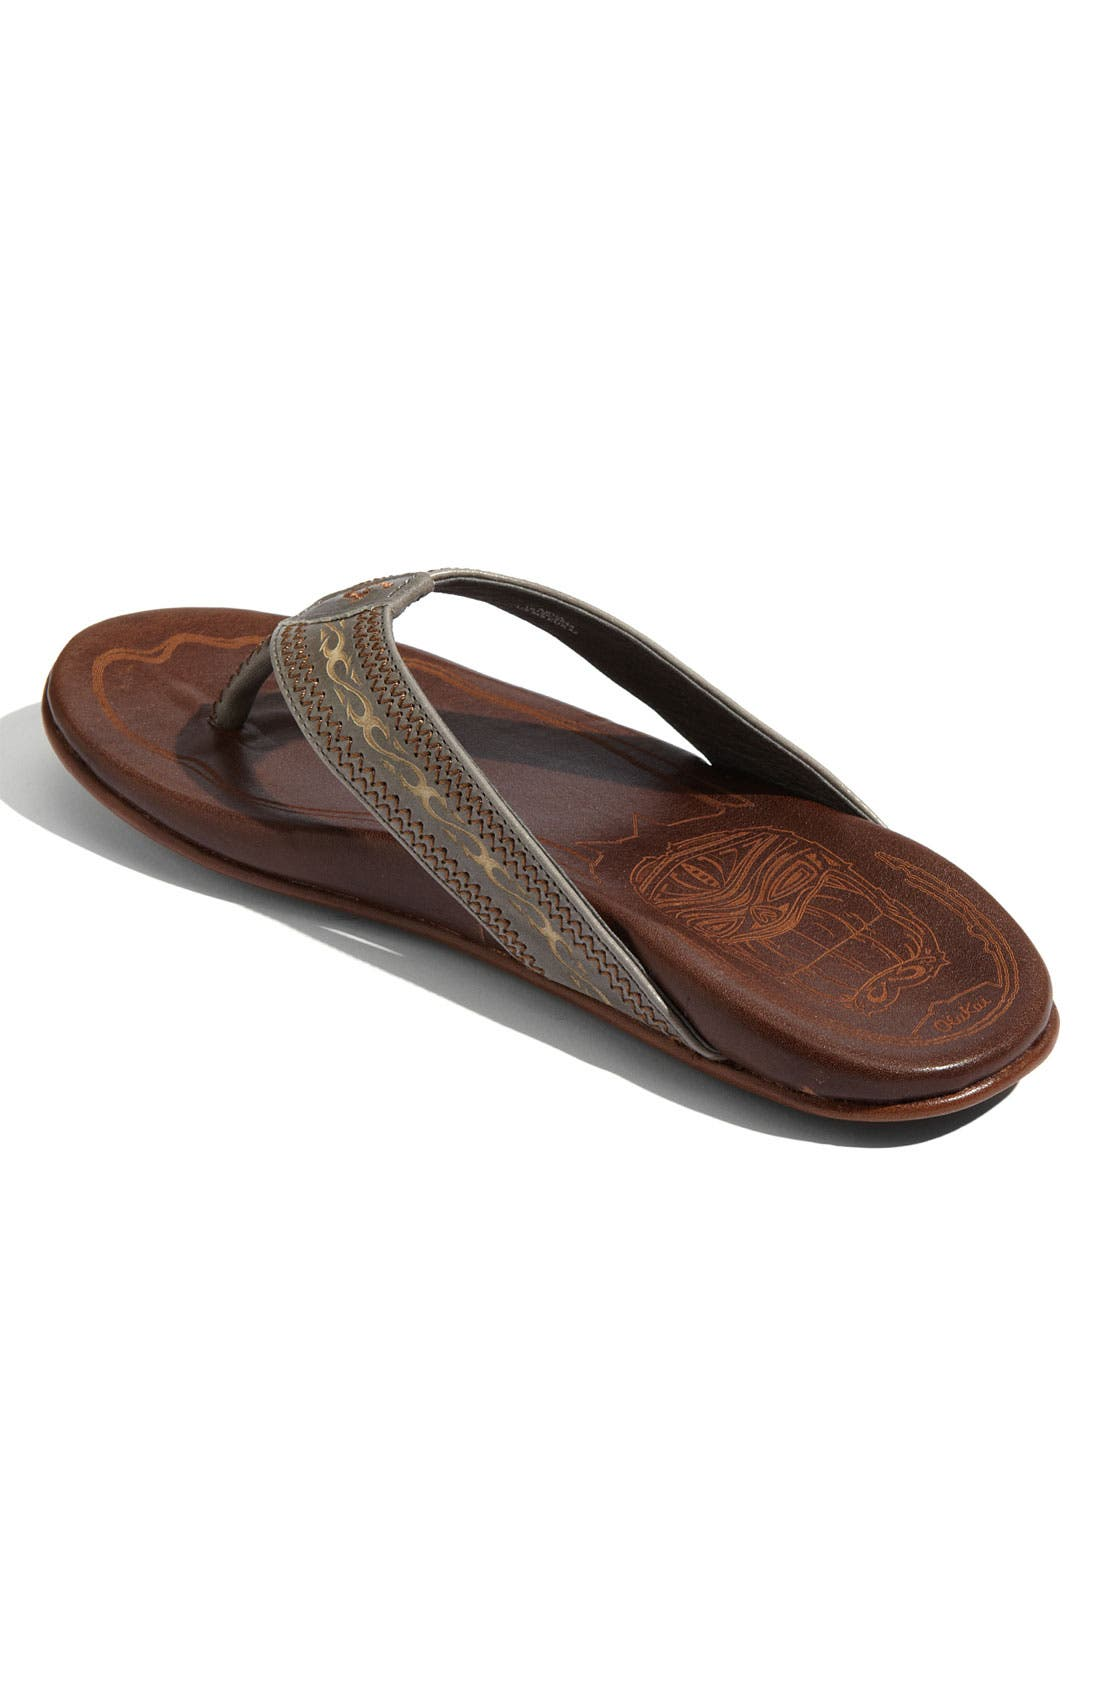 Alternate Image 2  - OluKai 'Akua' Flip Flop (Nordstrom Exclusive) (Men)